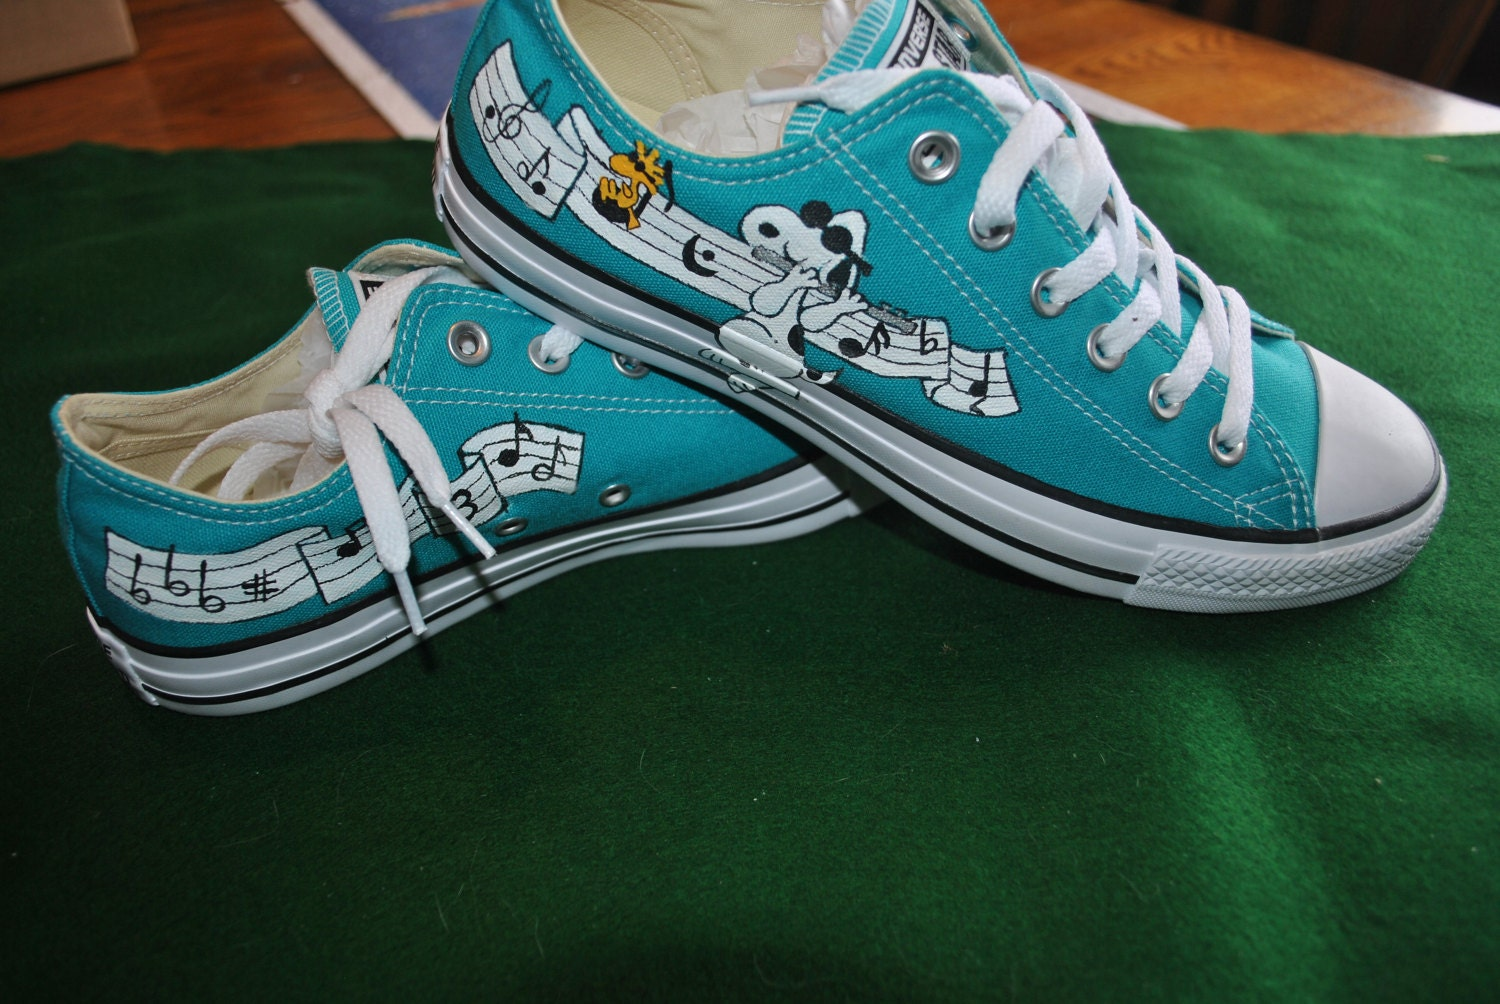 b9bbee52505 Custom Converse sneakers with Musical snoopy playing the flute